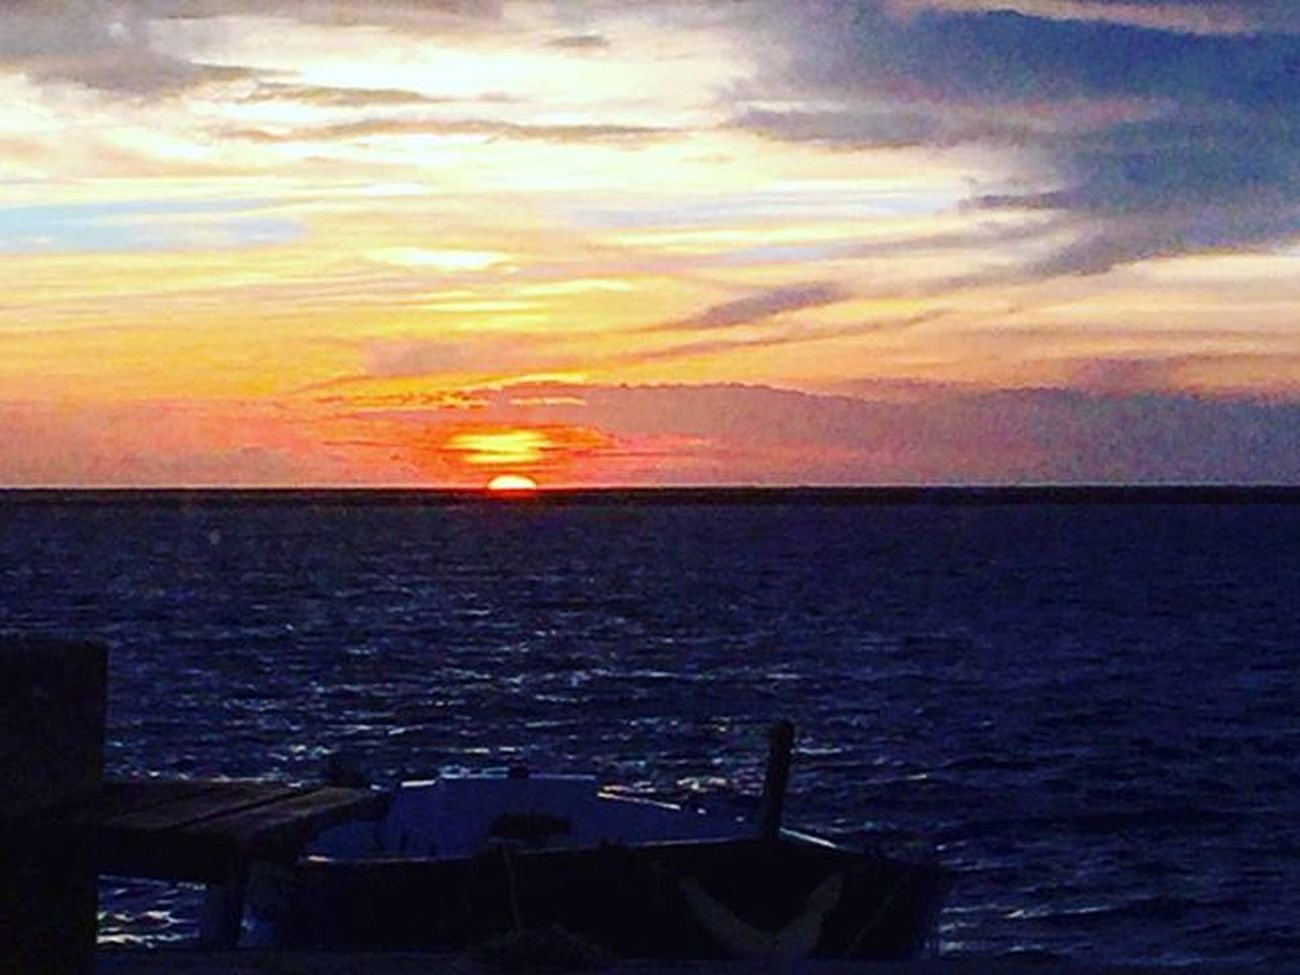 Take a breath. Sunset Salento Salentoesoncontento Portocesareo Sea Sealovers Sealife Beautiful Picoftheday Photooftheday Happiness Simple Simplethings Seaandsun Sky Skylovers Puglia Myplace Picofplace Place Love Colorful Colours January Januaryphotochallenge janvier gennaio 2016